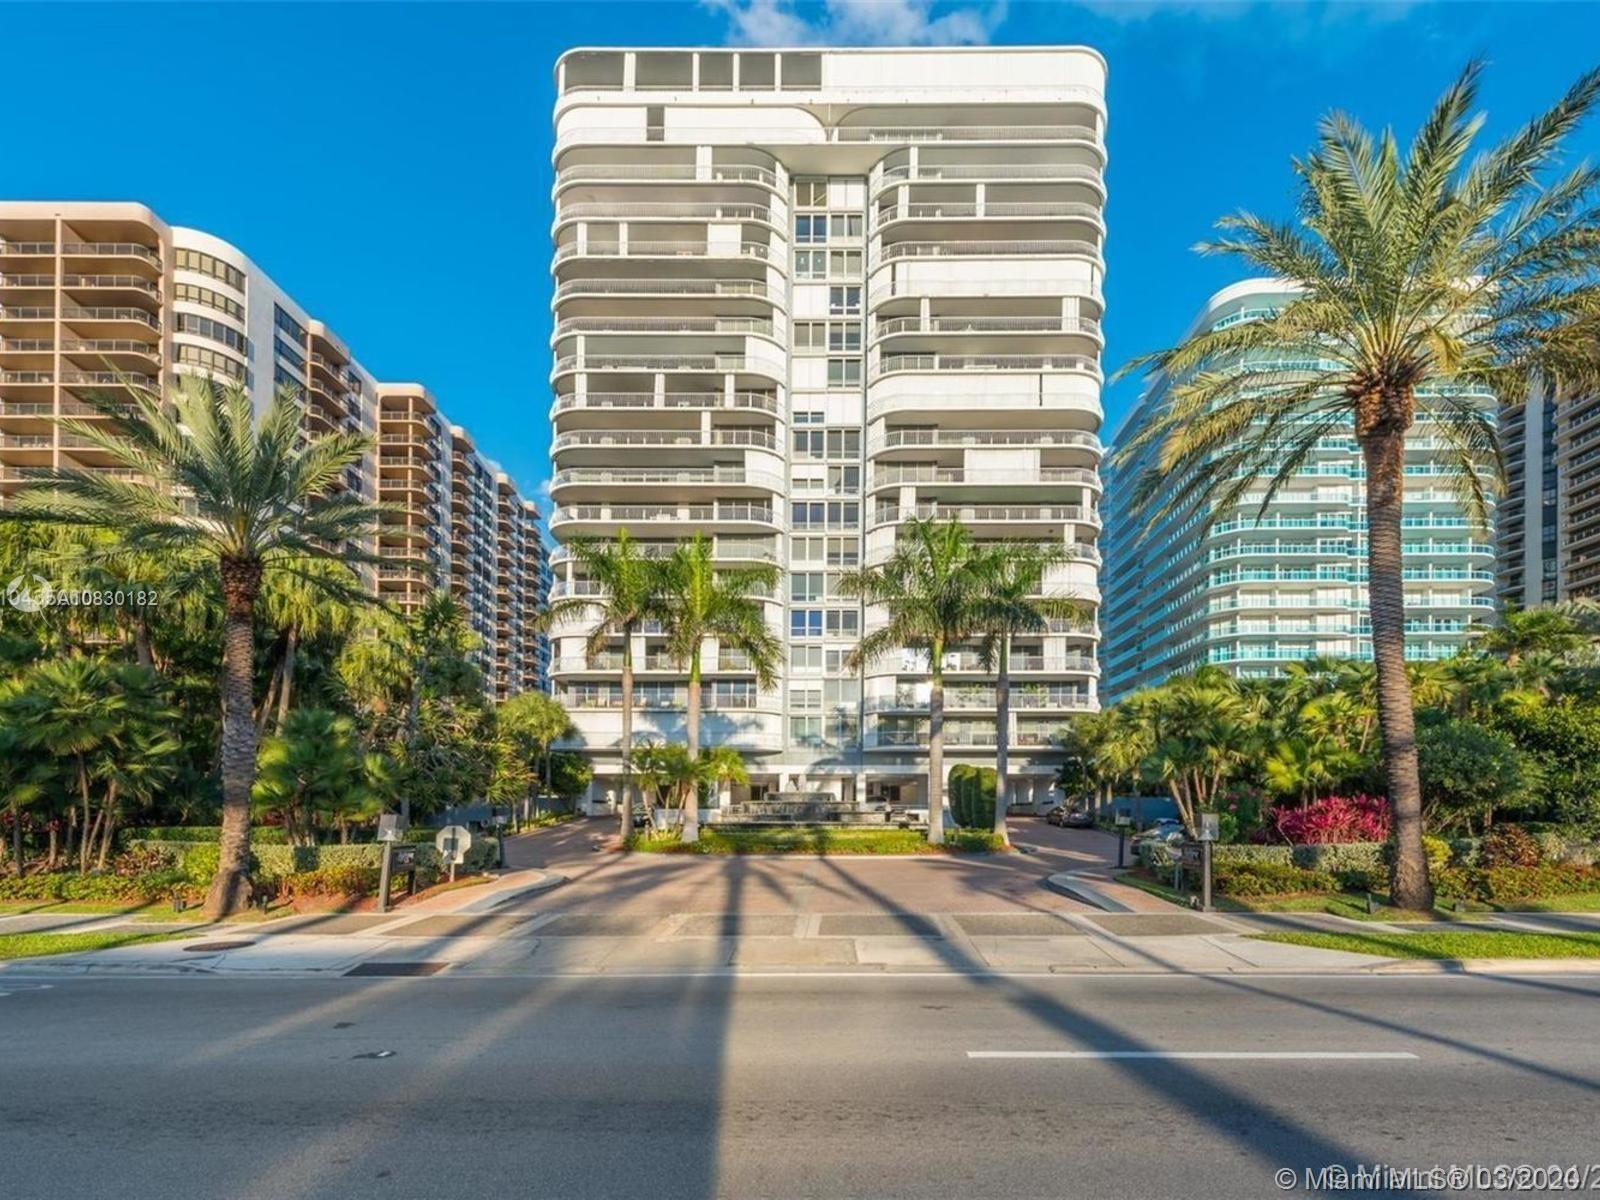 10155 Collins Ave 1006, Bal Harbour, FL 33154